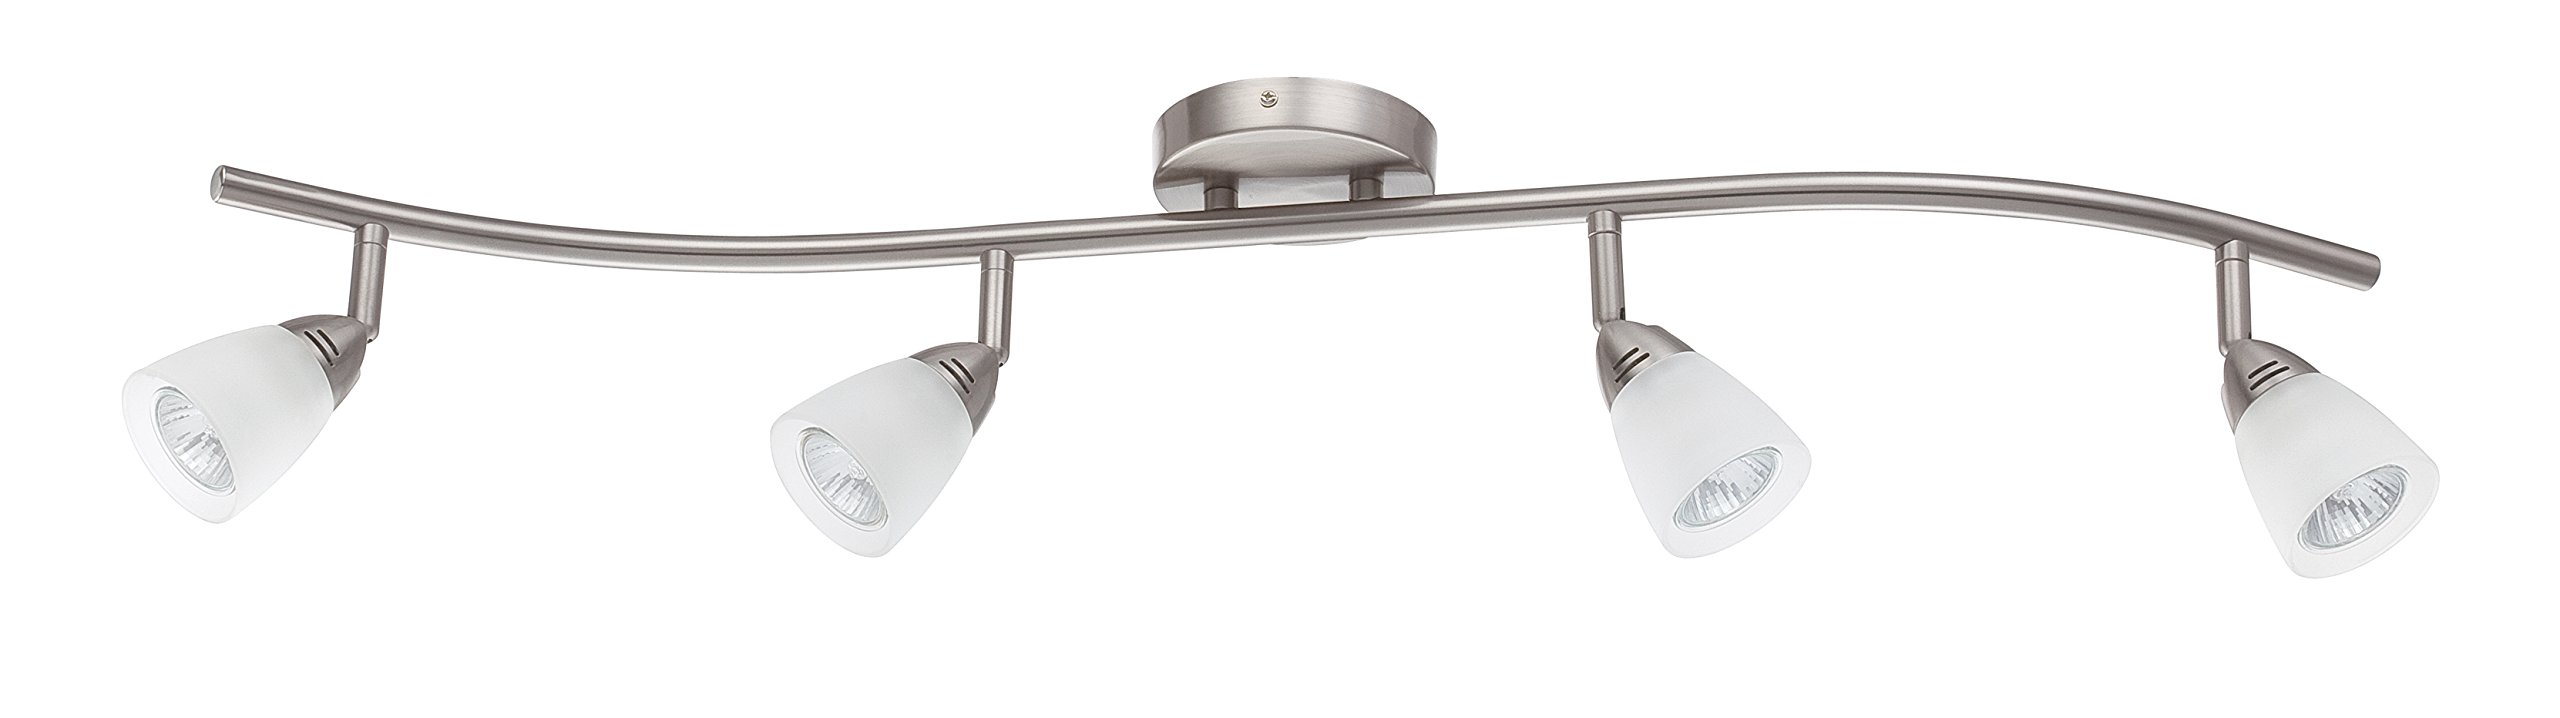 Luminance F2987-80 Contemporary 4 Fluorescent Track Light with Bright Satin Nickel Finish